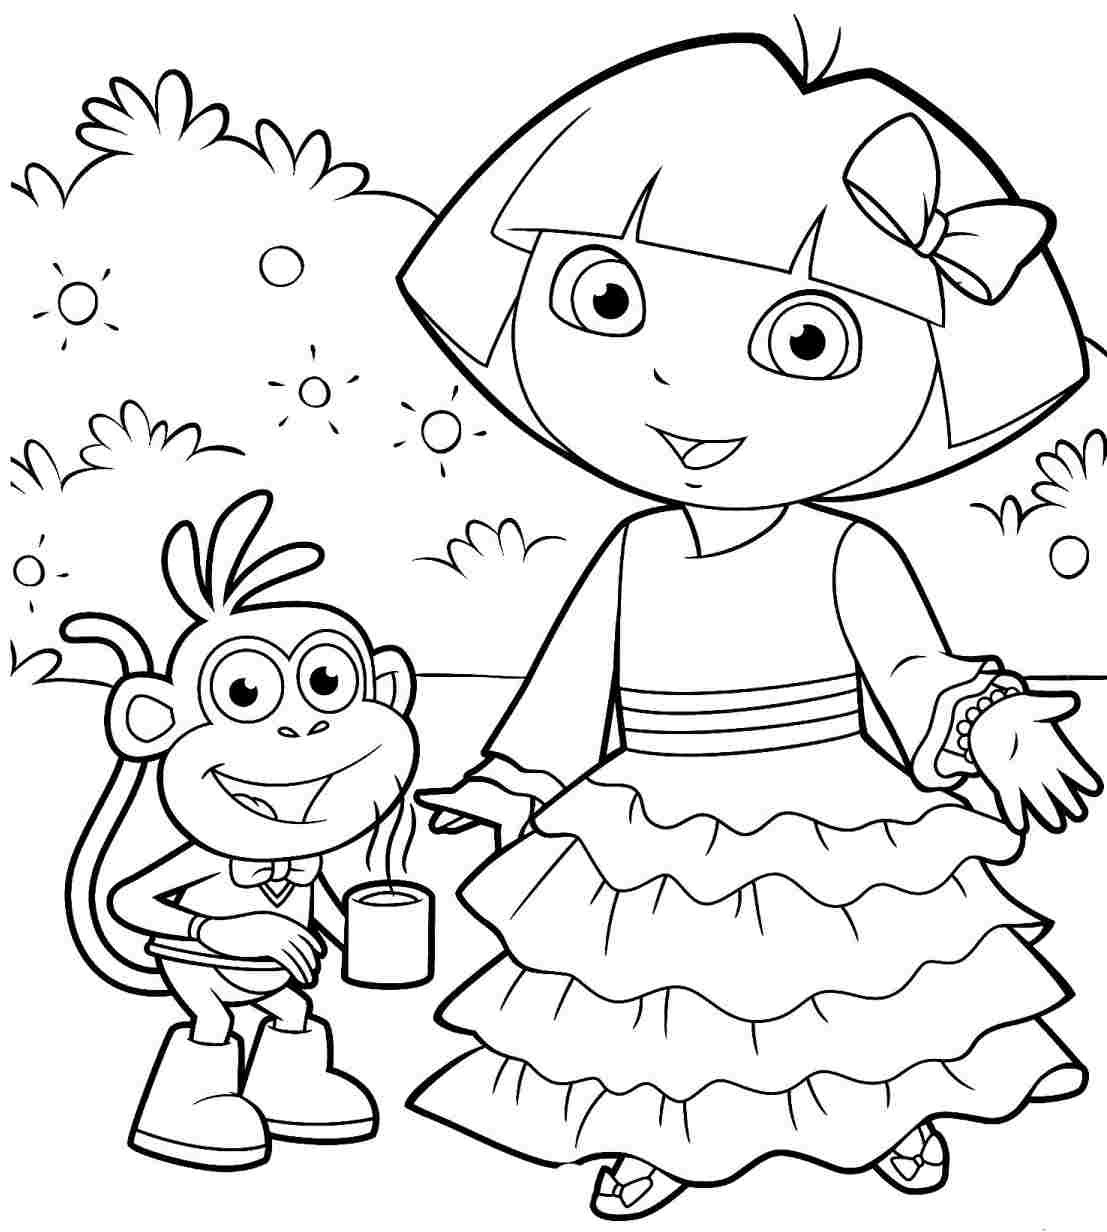 dora color sheets print download dora coloring pages to learn new things dora color sheets